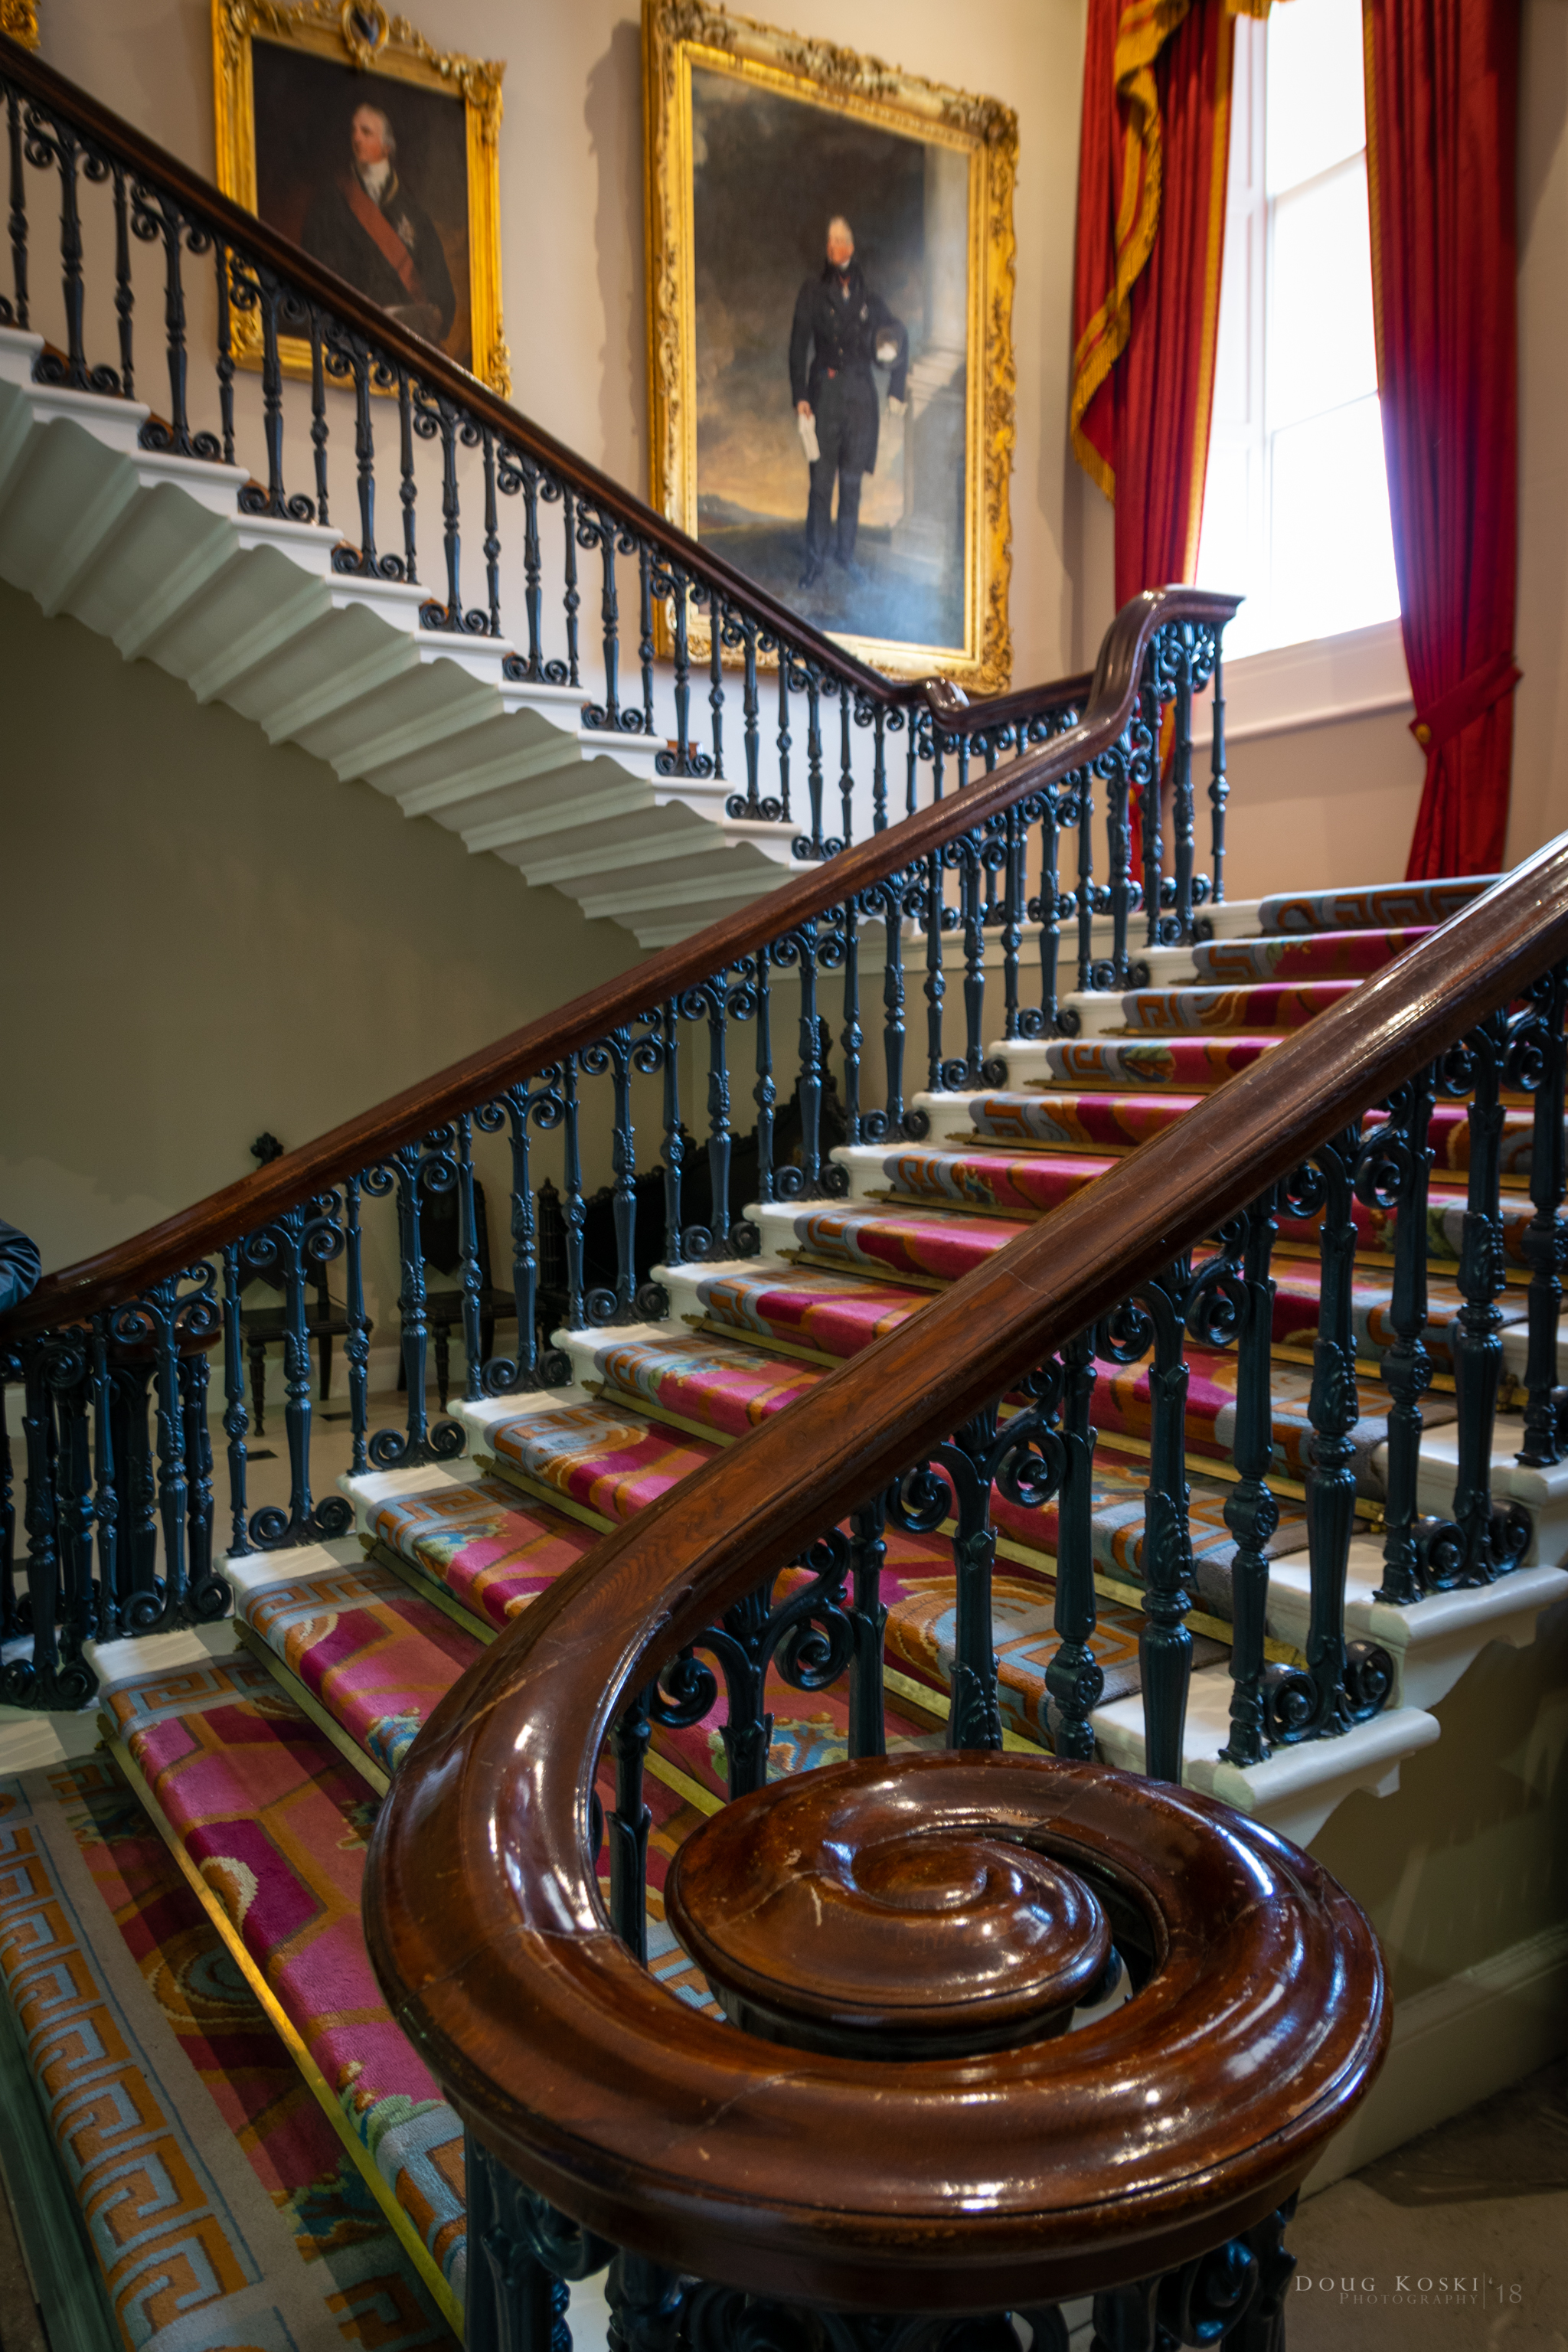 The Grand Staircase - Quite the statement to find upon entering the building.